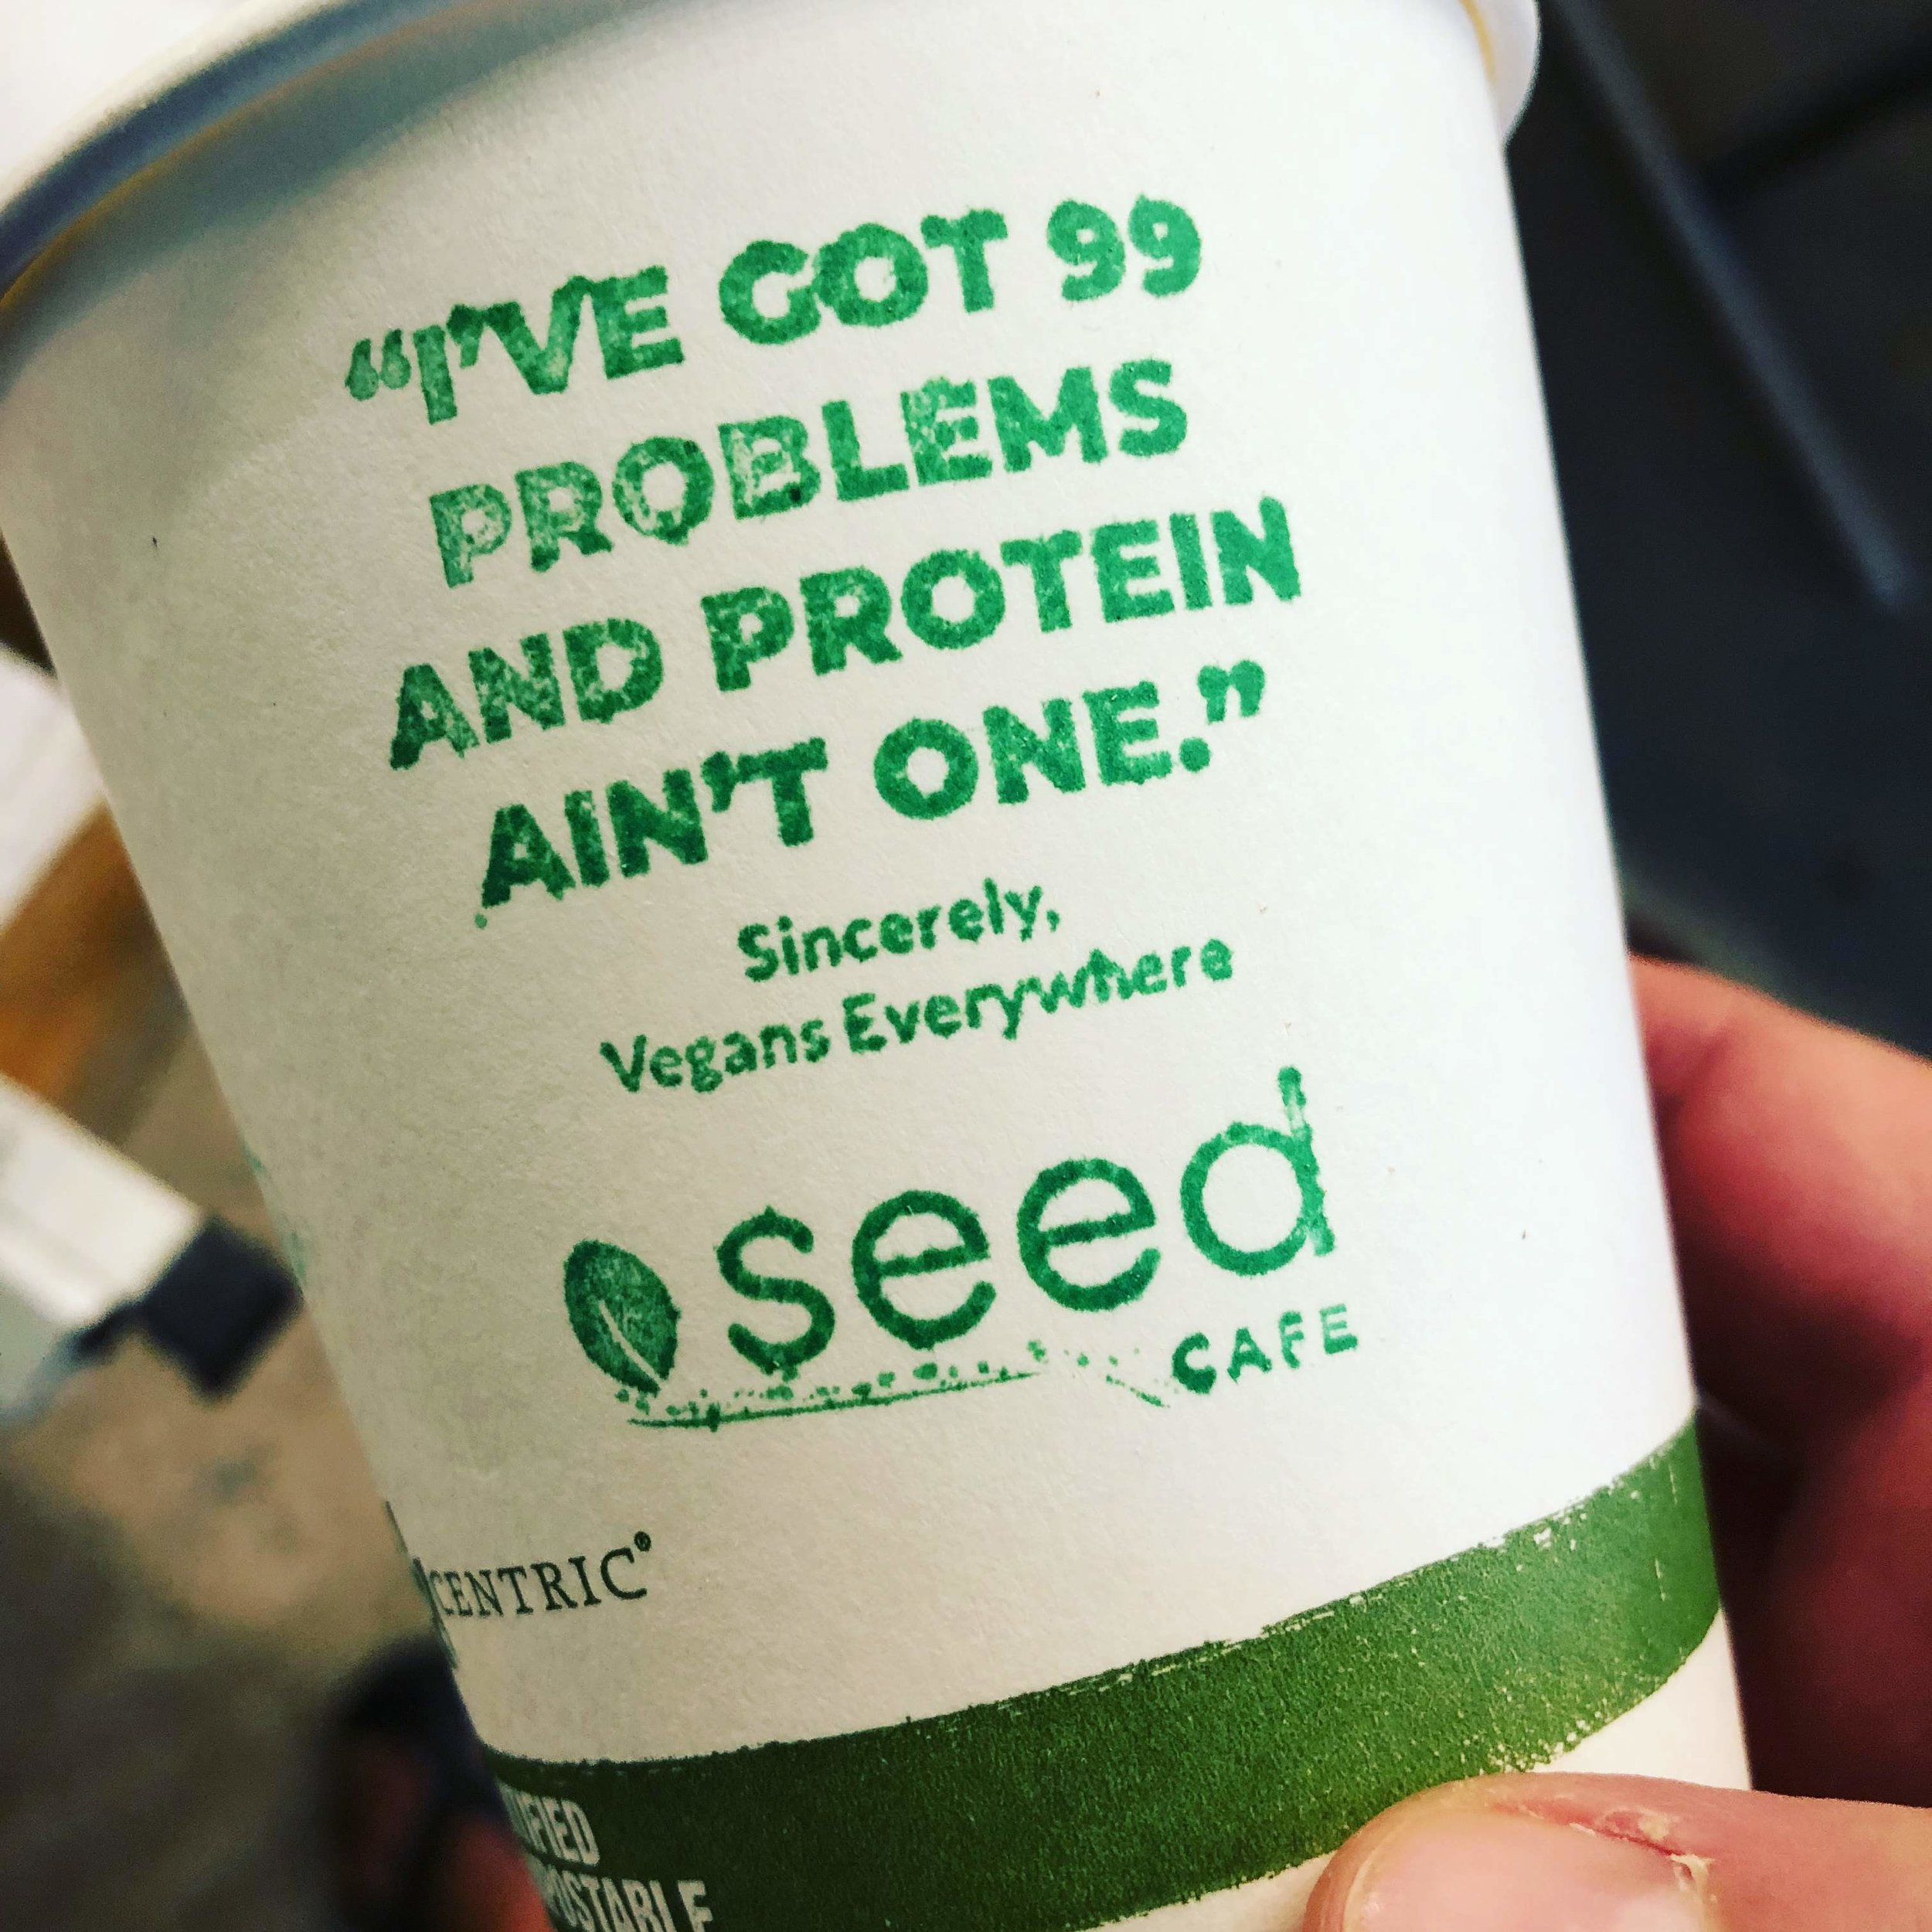 Ya, we'll say it, we got some amazing coffee over hear at Seed Cafe. Come try it today! And great wi-fi too. Come set up shop and get some work done!